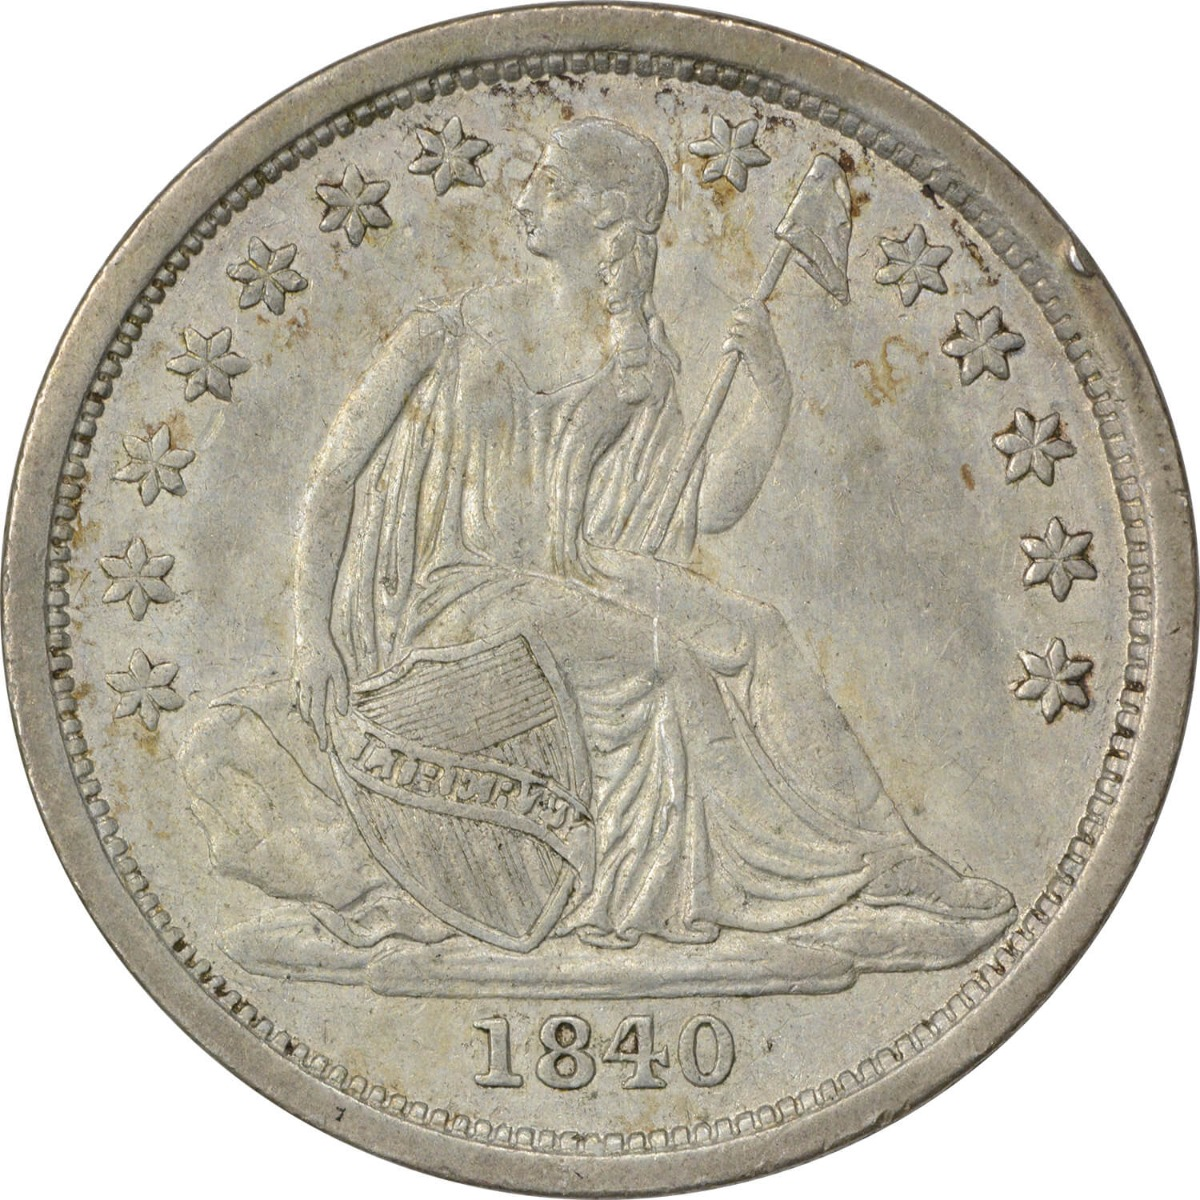 1840 Liberty Seated Silver Dime, No Drapery, AU, Uncertified